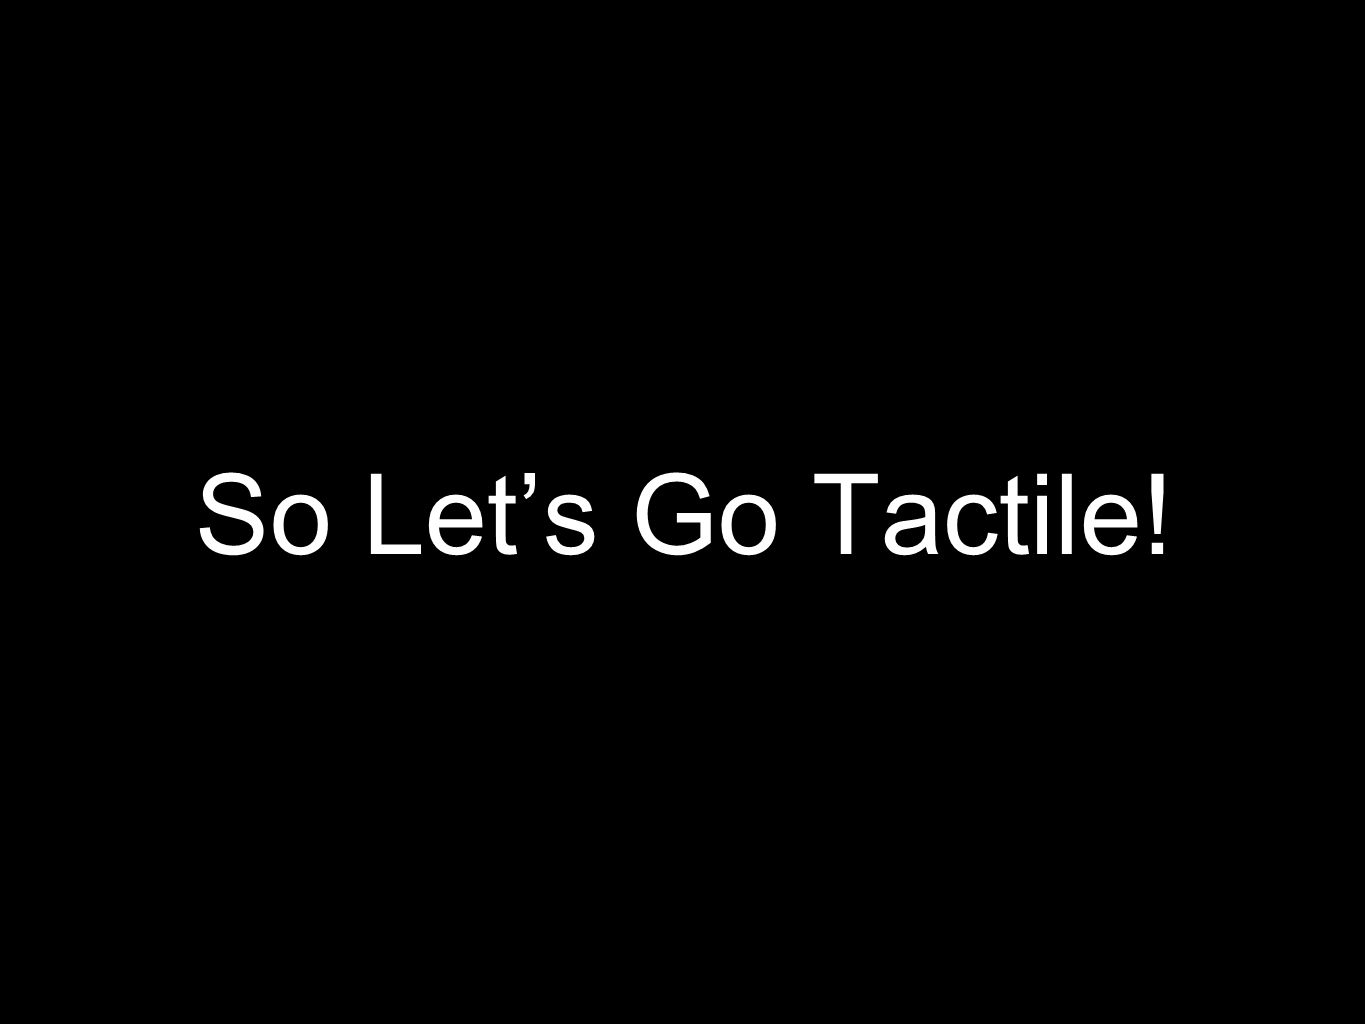 So Let's Go Tactile!